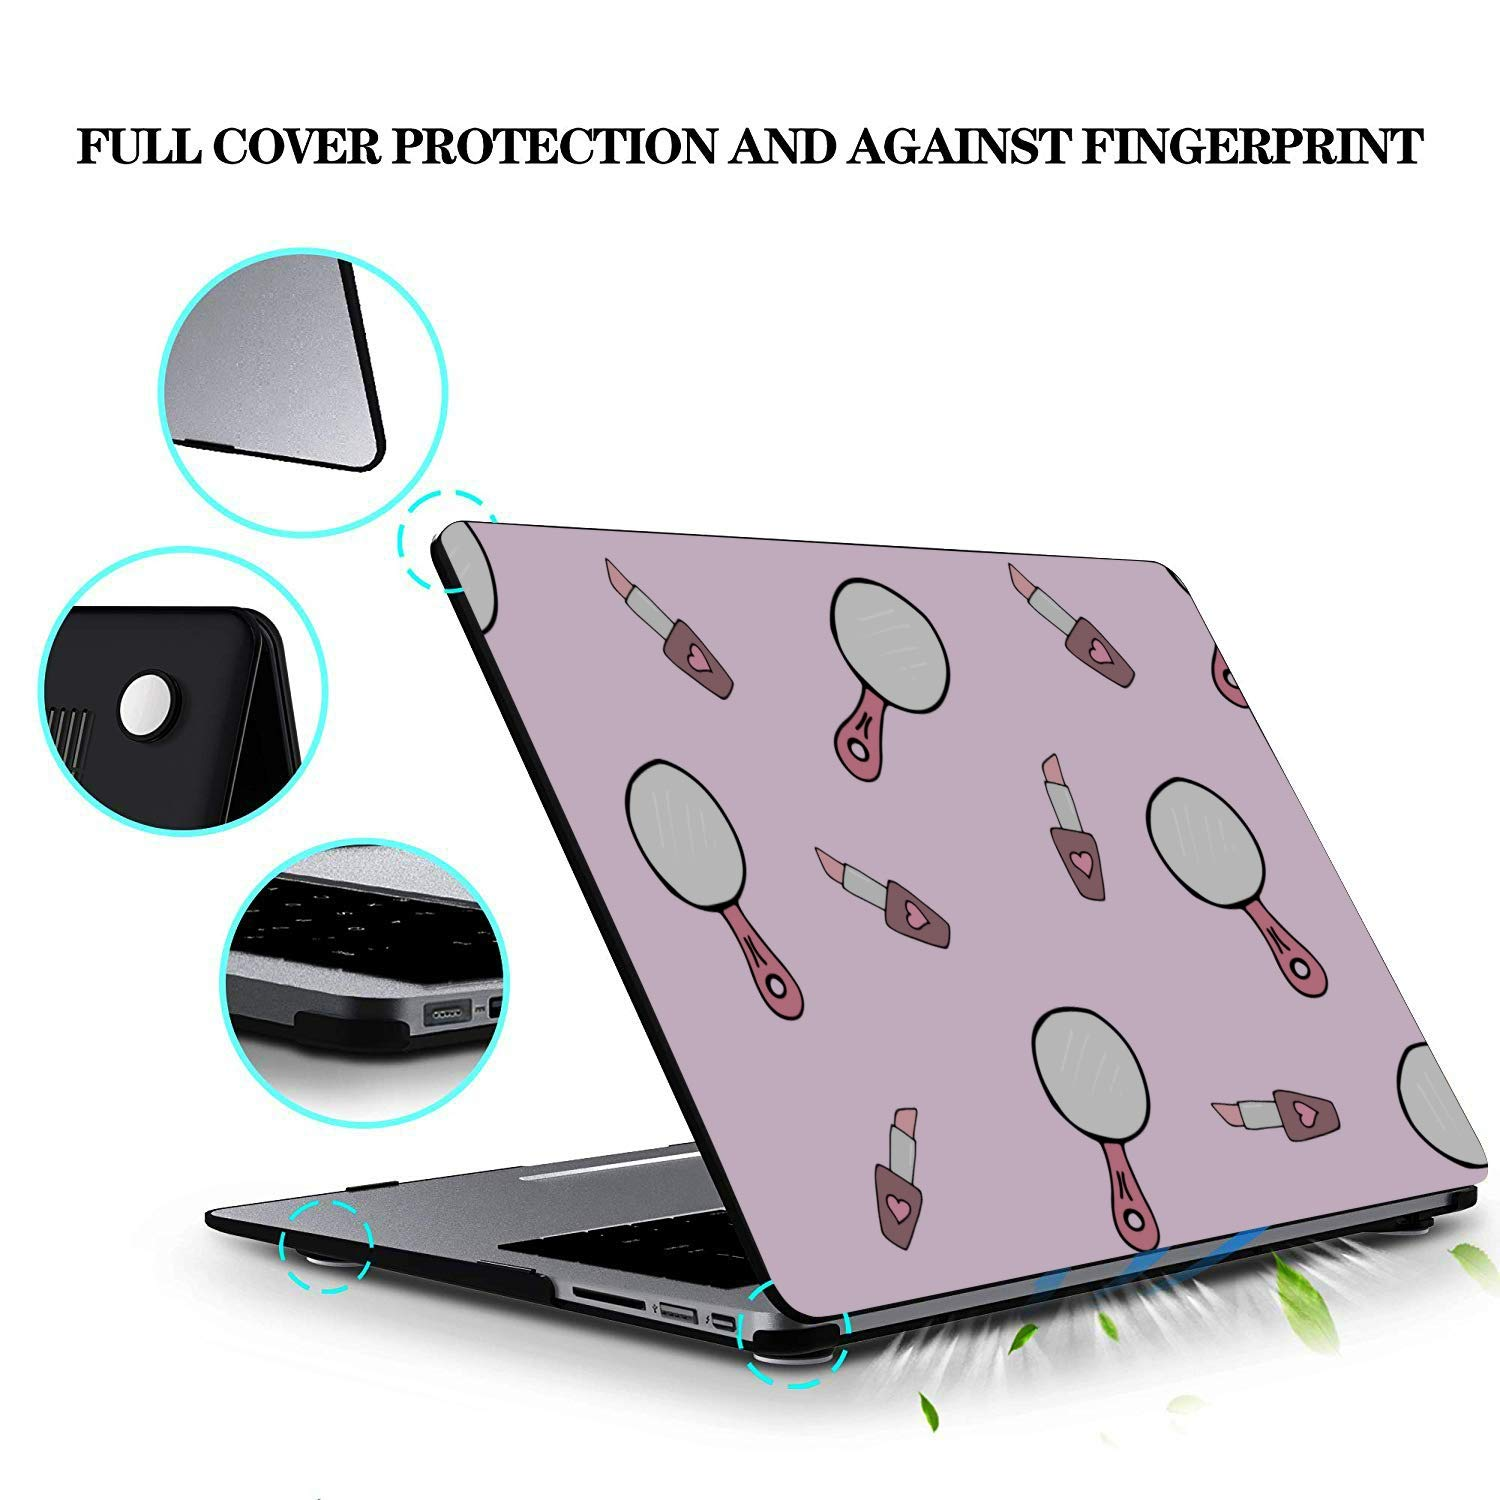 MacBook Pro 15 Case Small Objects Beauty Dressing Mirror Plastic Hard Shell Compatible Mac Air 11 Pro 13 15 MacBook Air Laptop Cover Protection for MacBook 2016-2019 Version